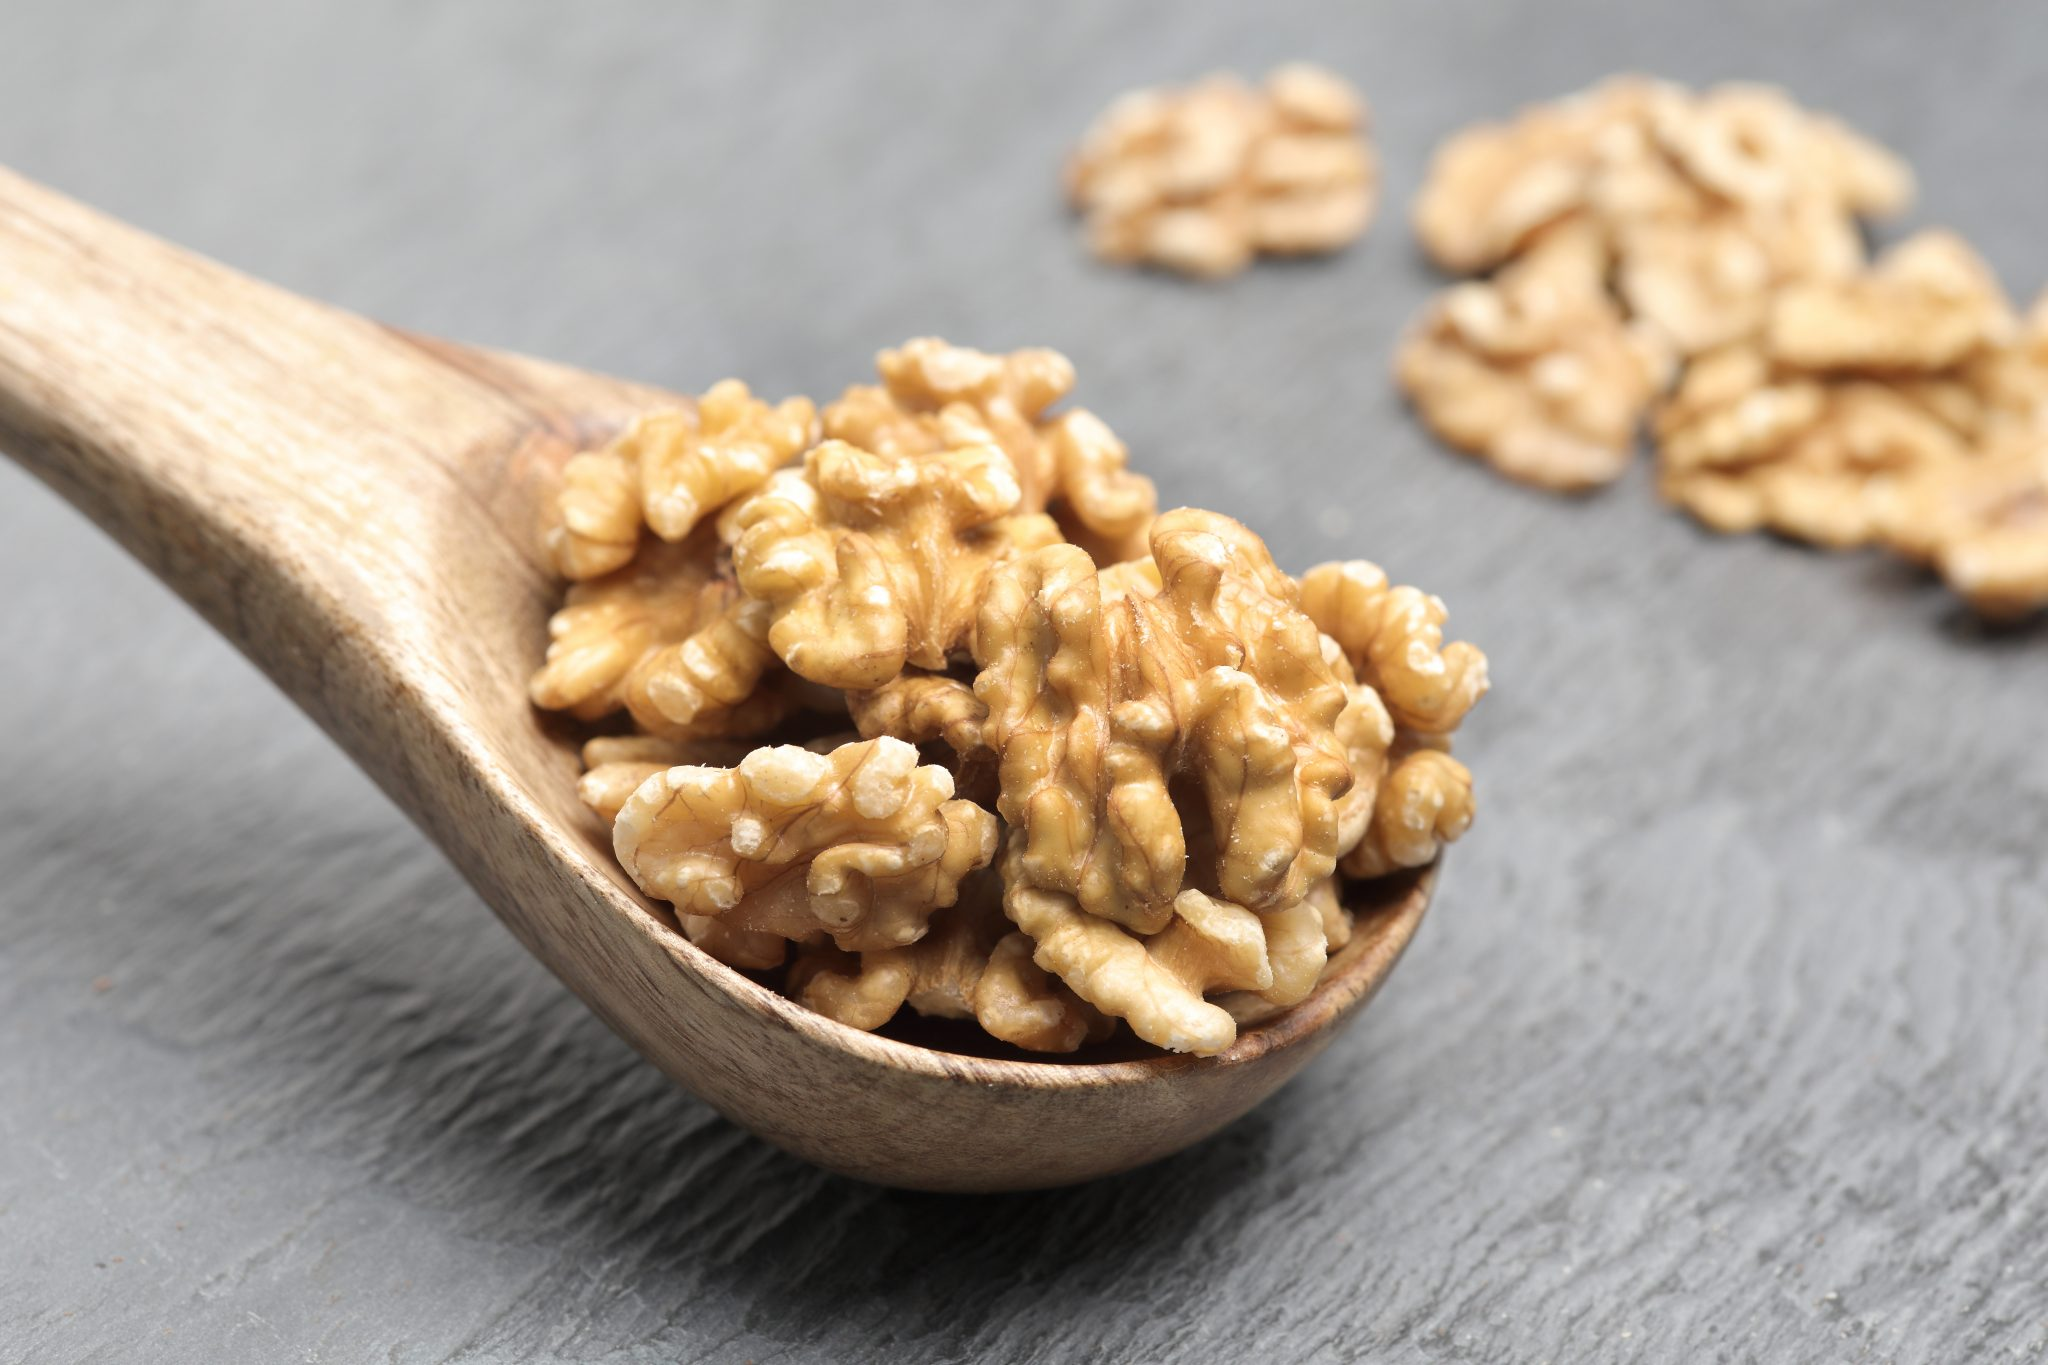 Chandras healthy vegan snack walnut halves on a wooden spoon